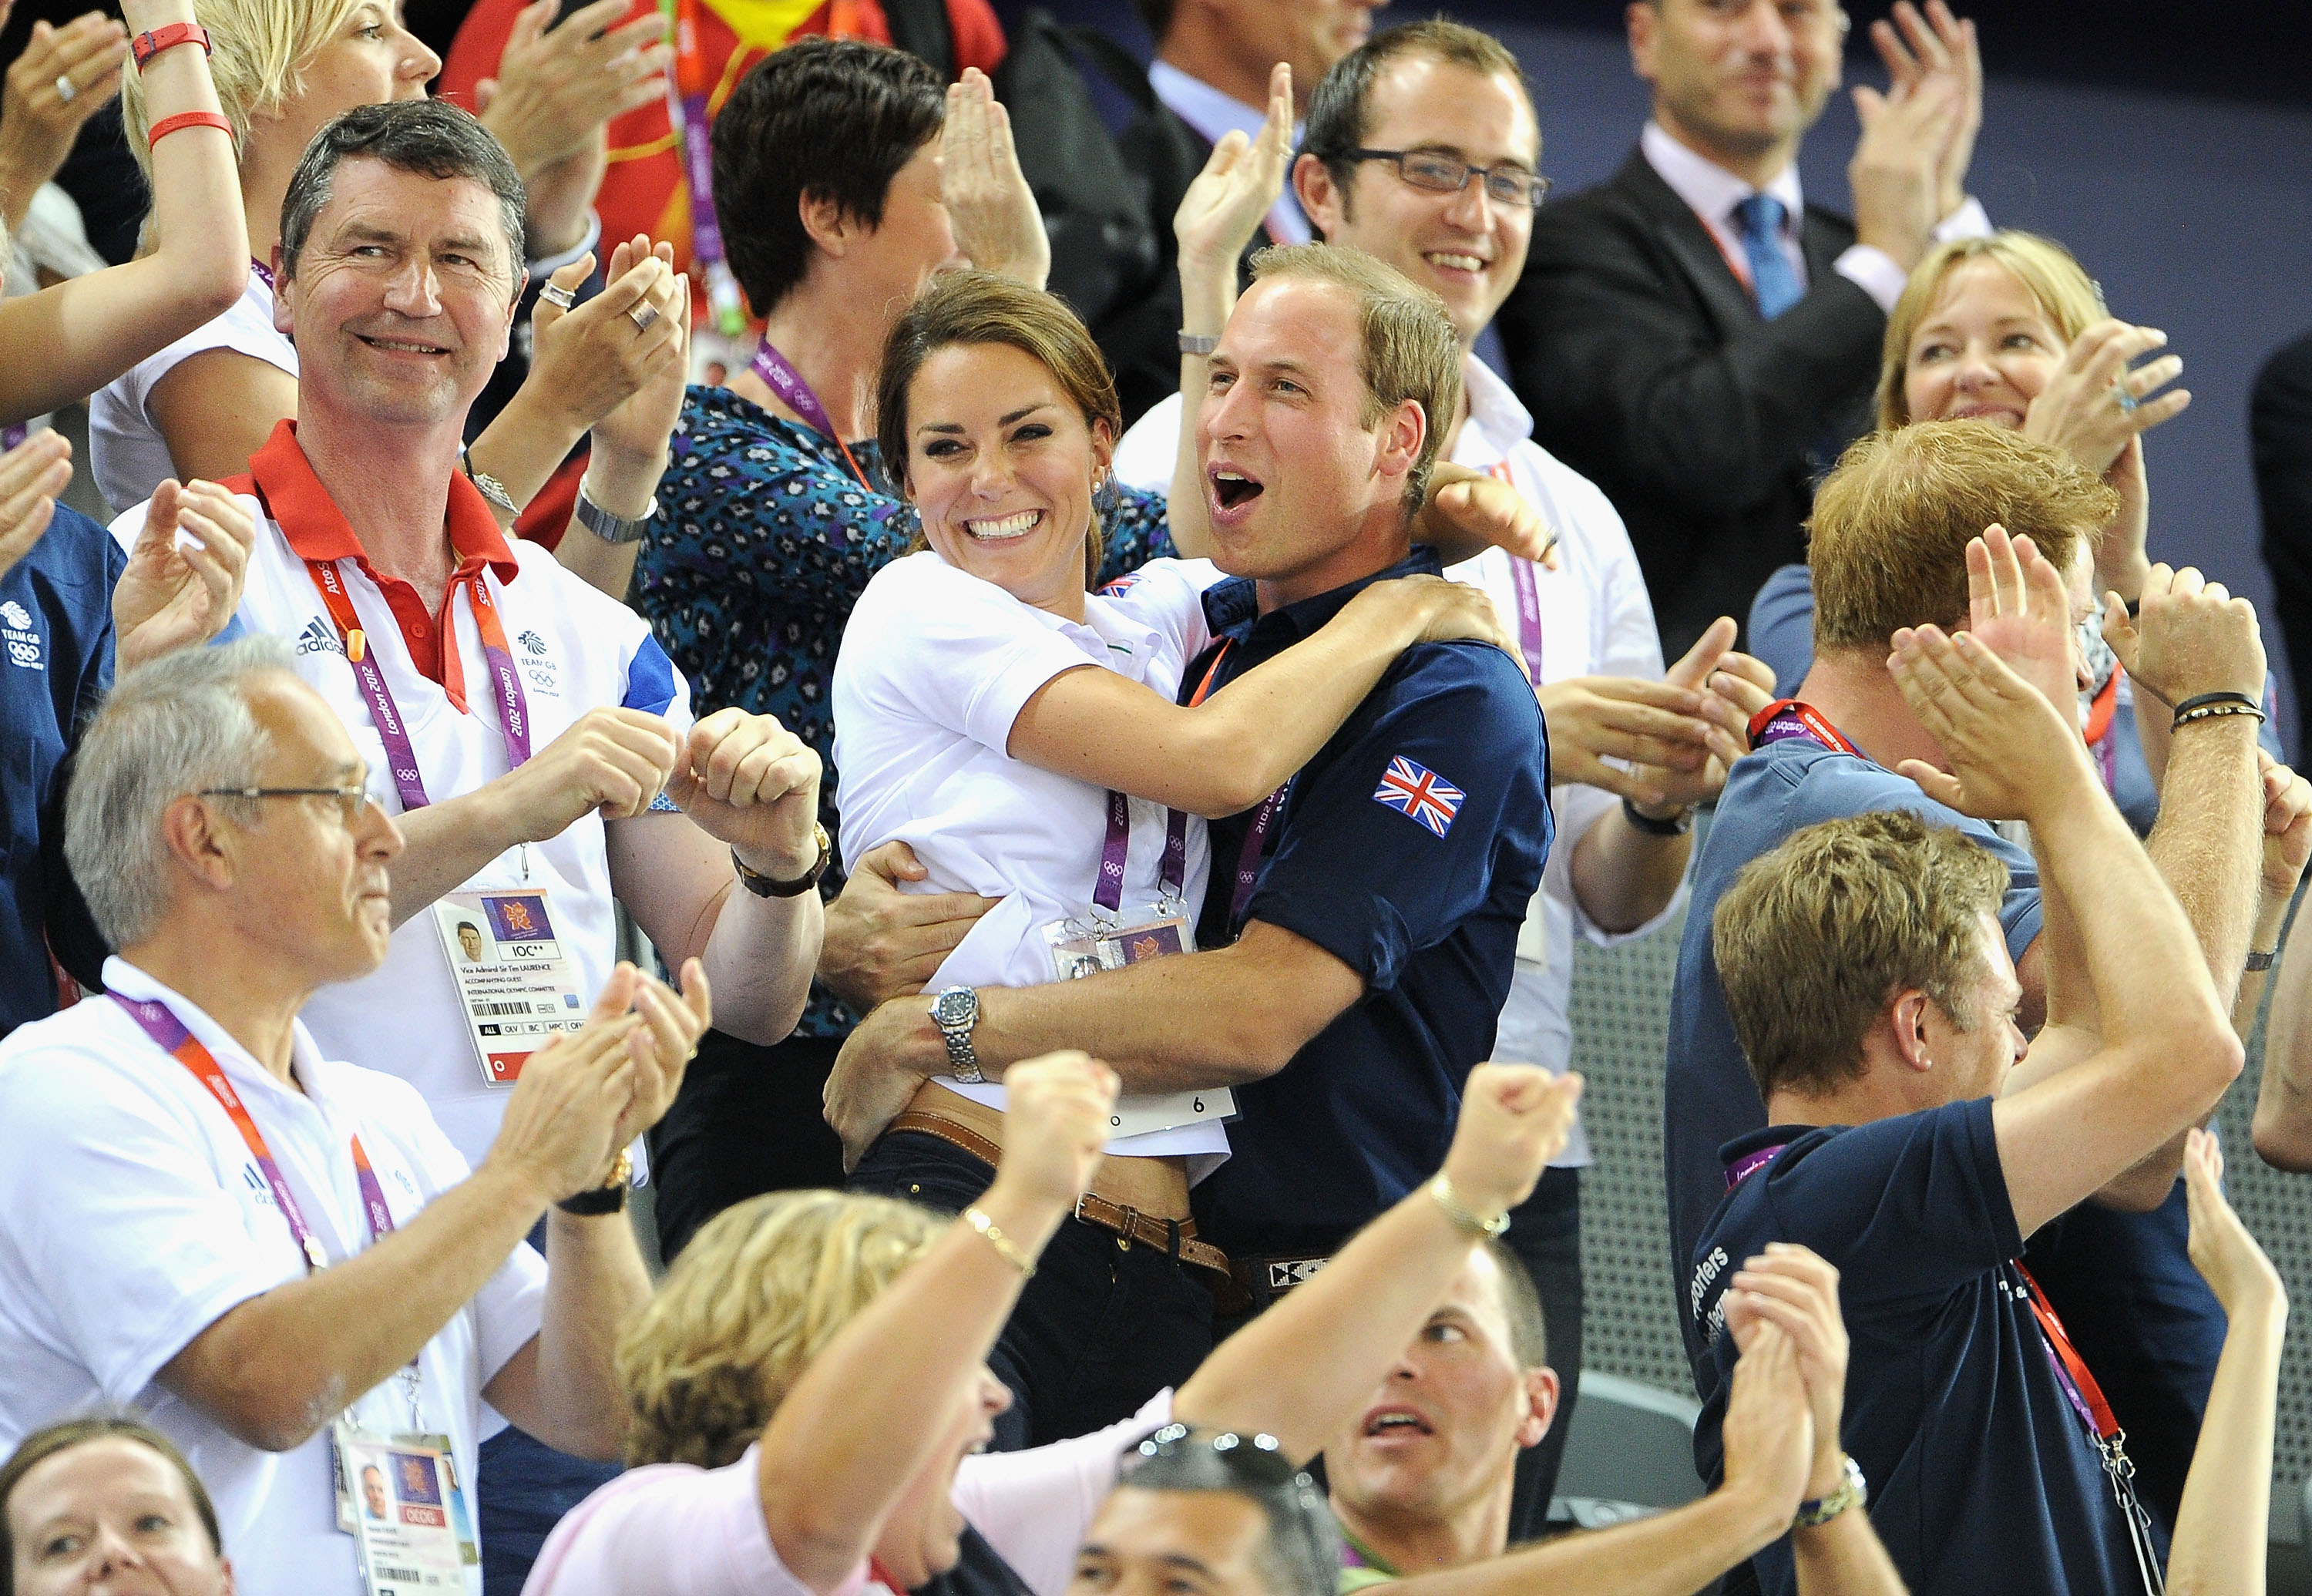 Kate Middleton Prince William hug 2012 Olympics cy